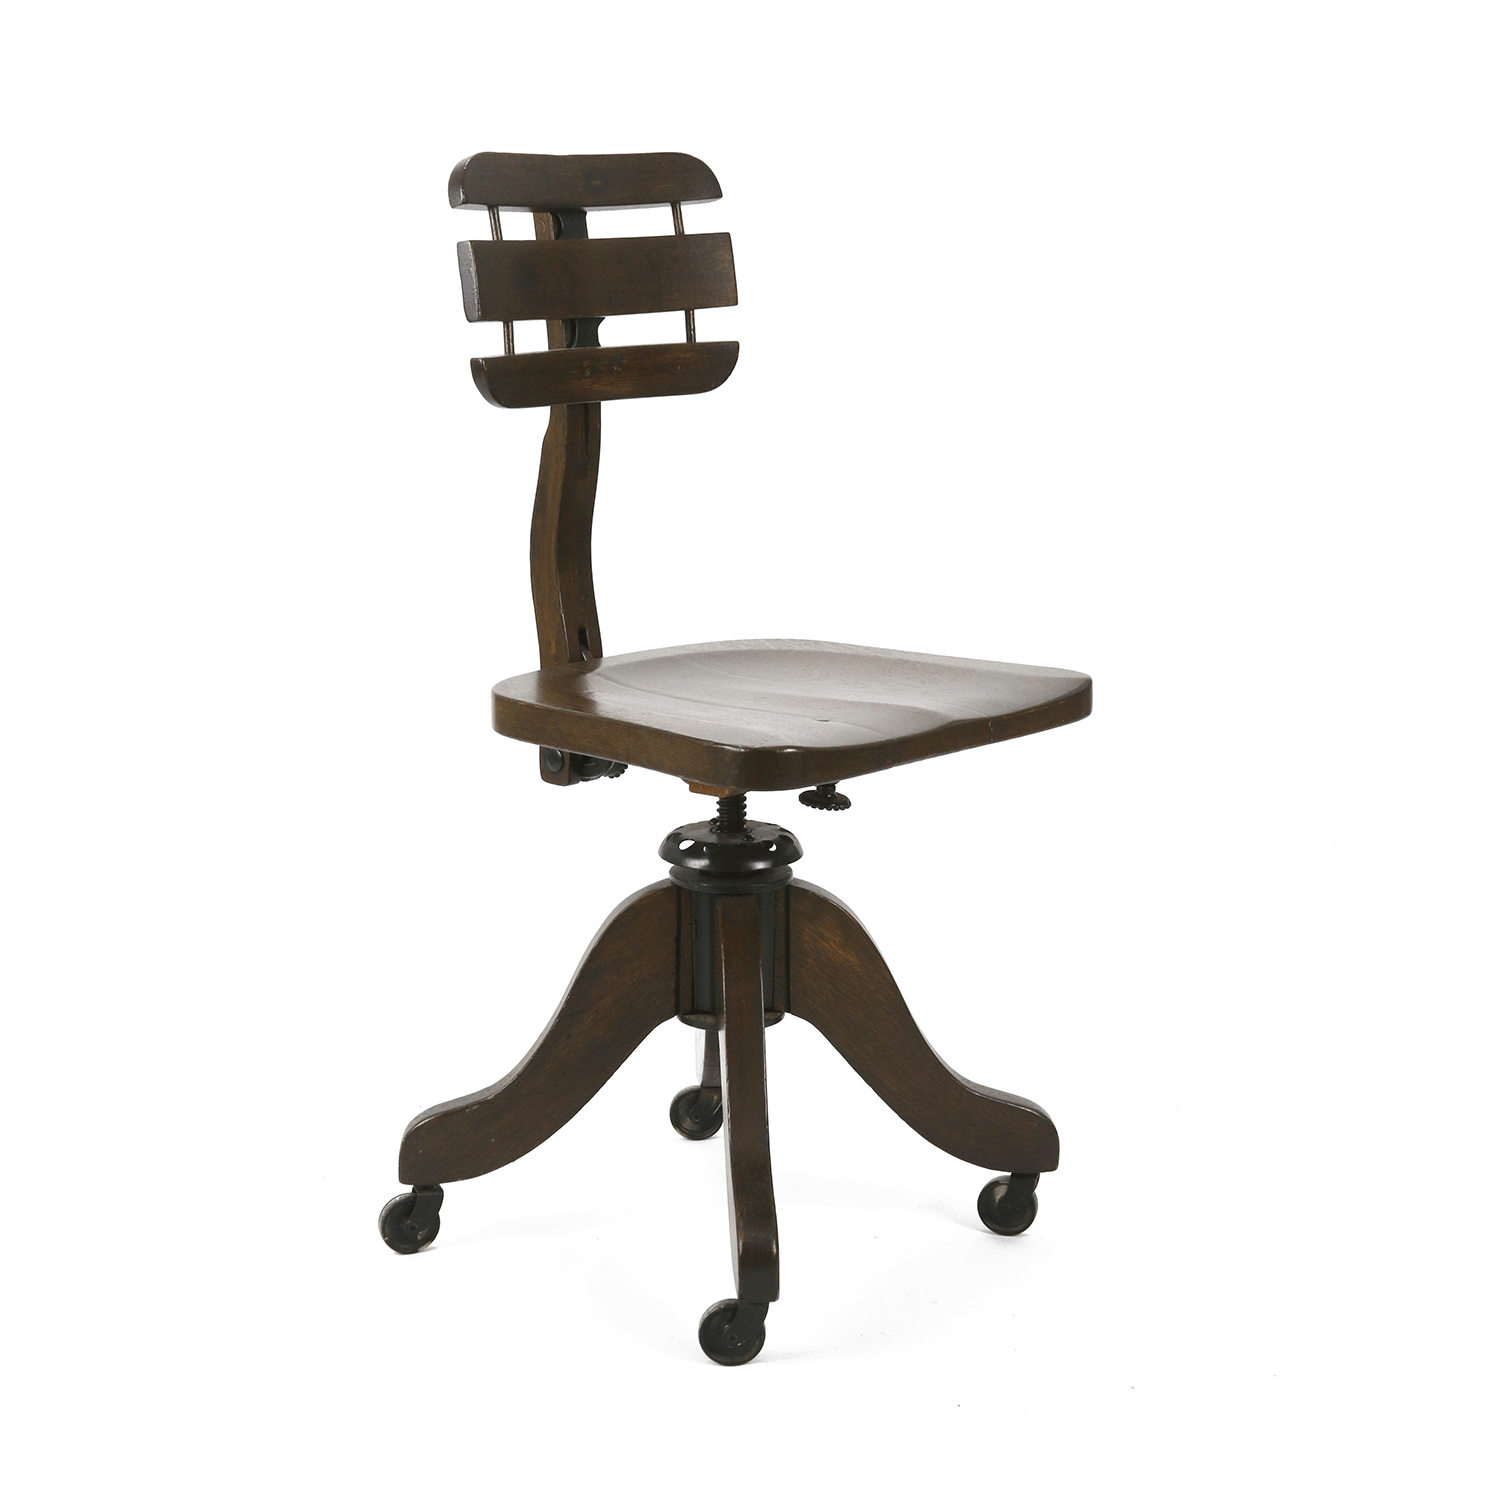 desk chair made barber chairs for sale used early 1900s antique cook chairish offered is an wooden by co in cambridge